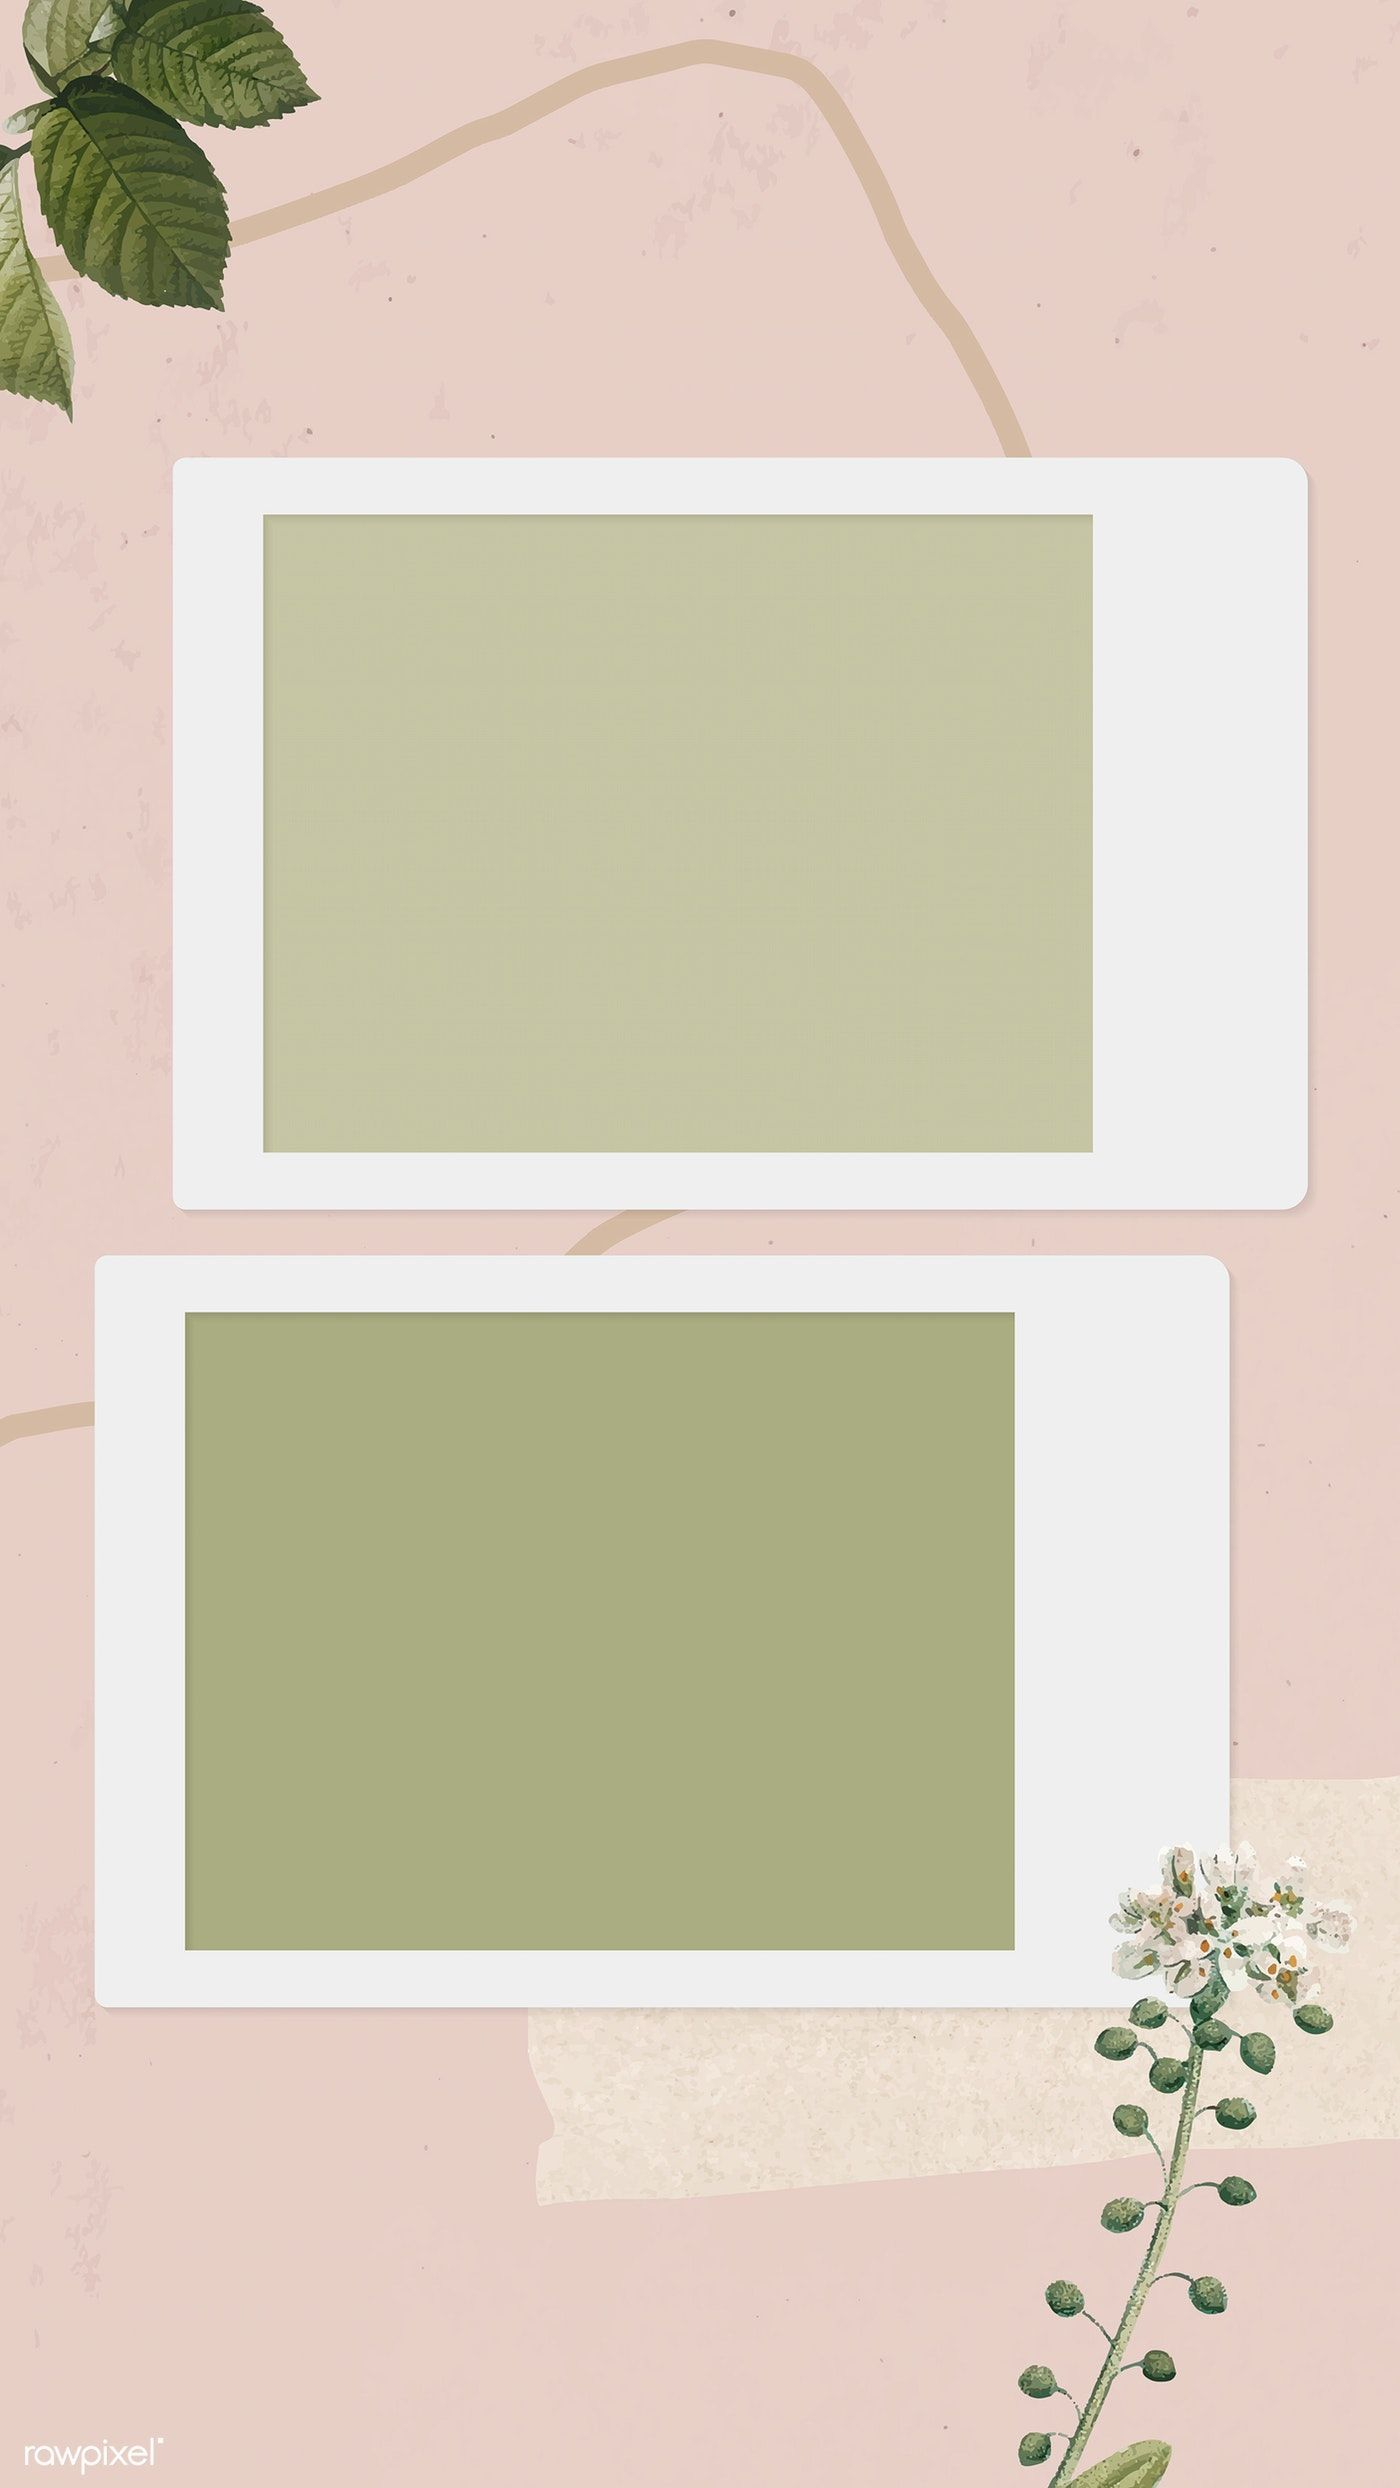 Blank collage photo frame template on pink background vector mobile phone wallpaper   premium image by rawpixel.com / NingZk V.